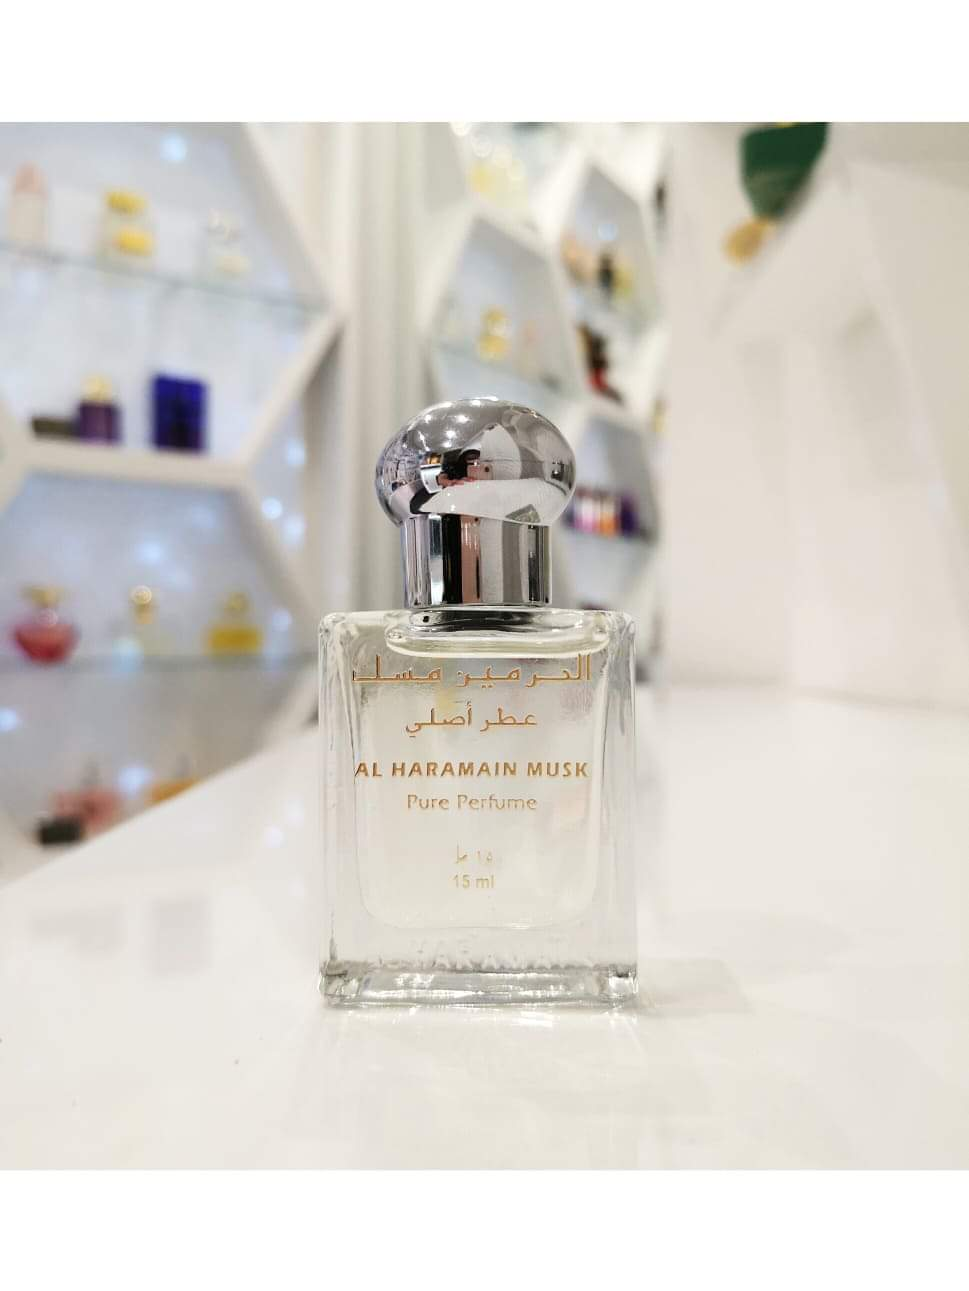 Al Haramain Musk oil 15ml